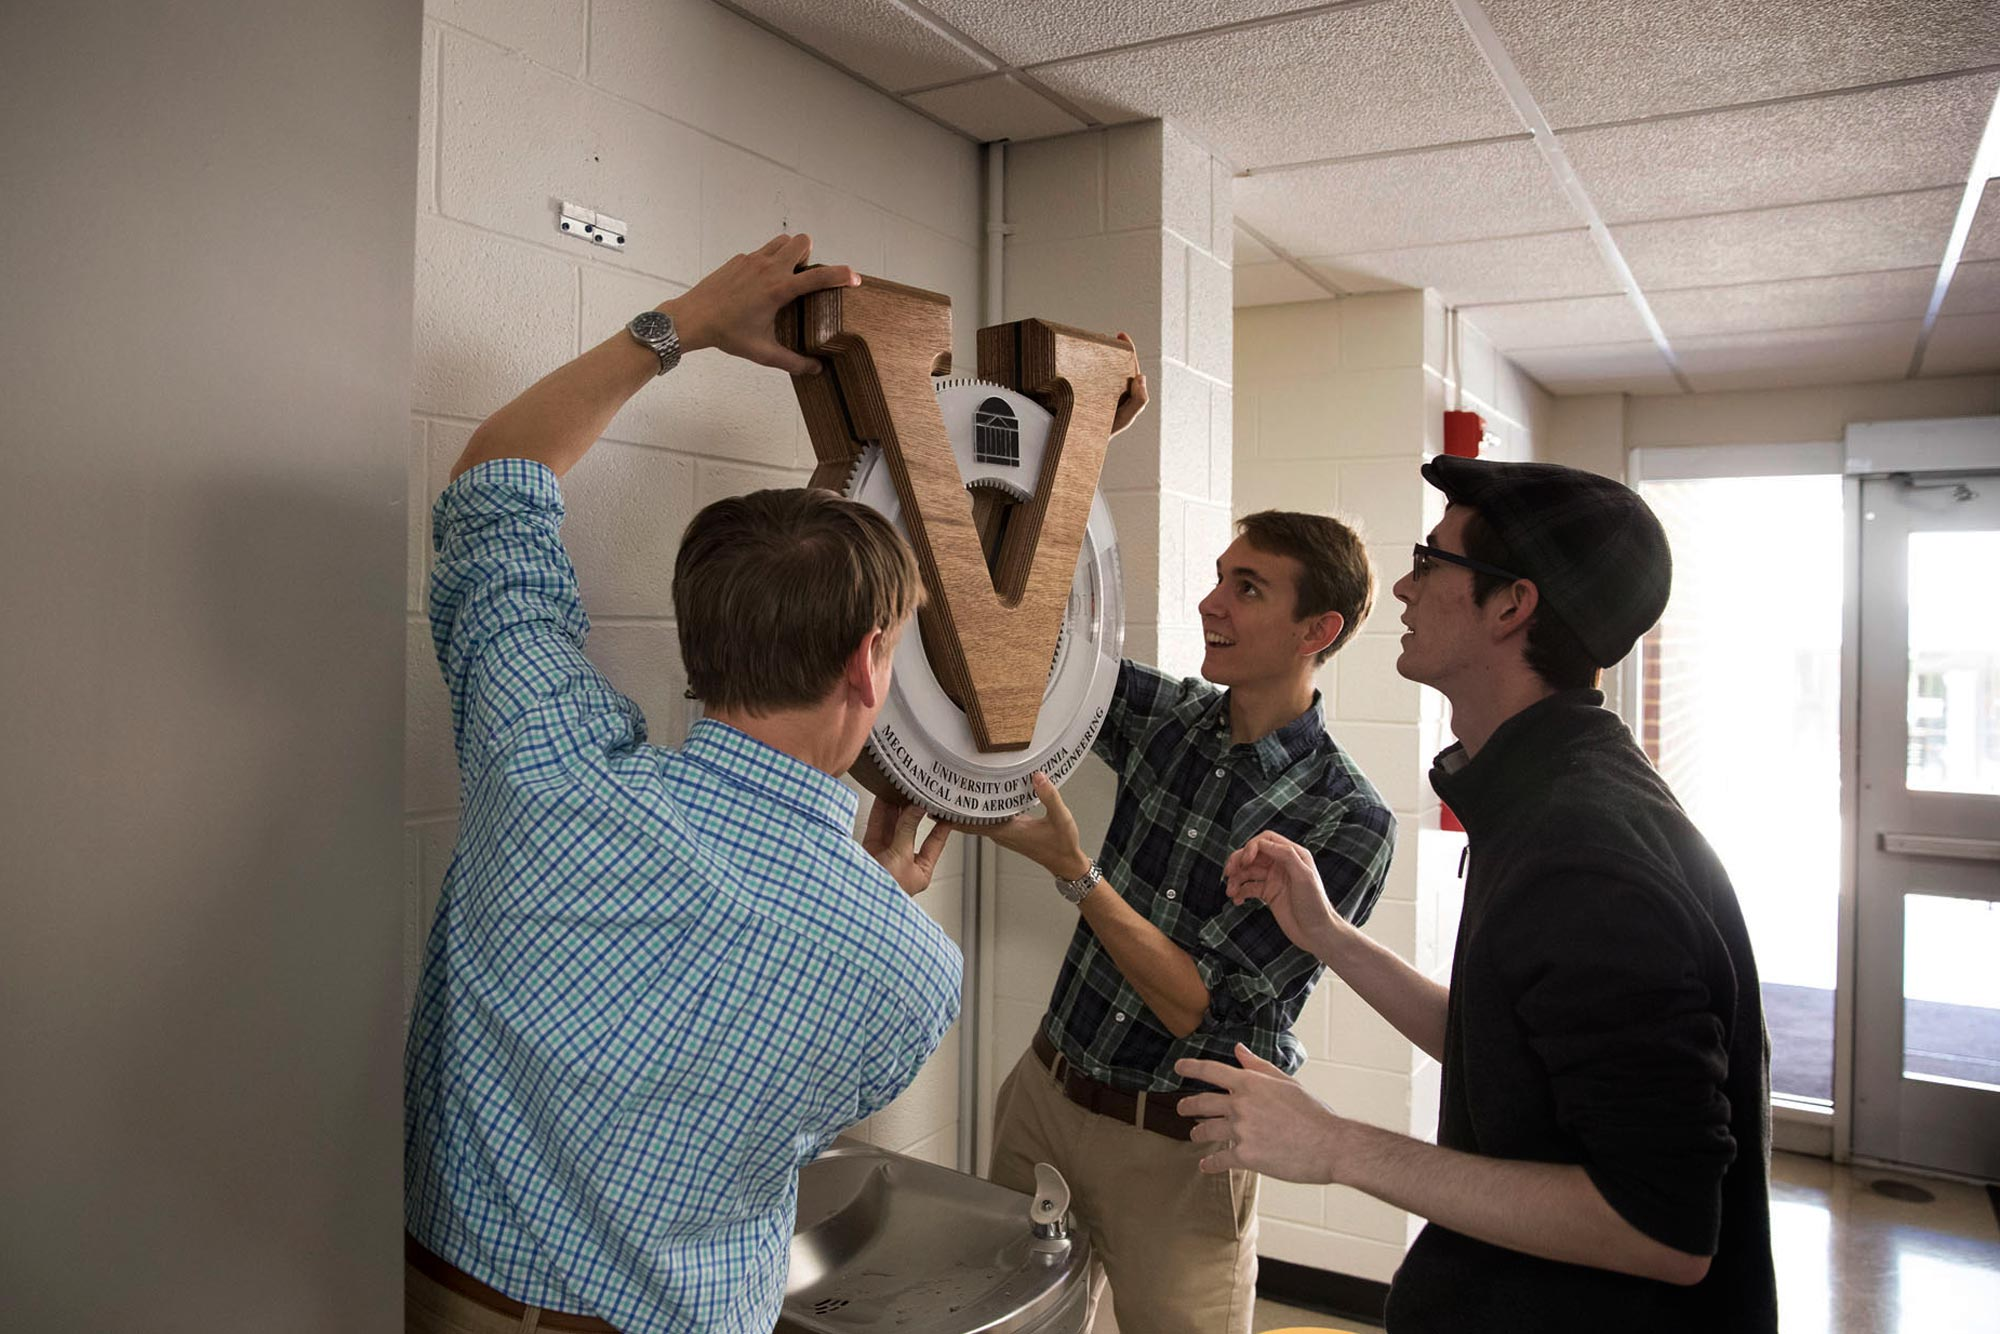 Three students hanging a clock in a hallway over a waterfountain